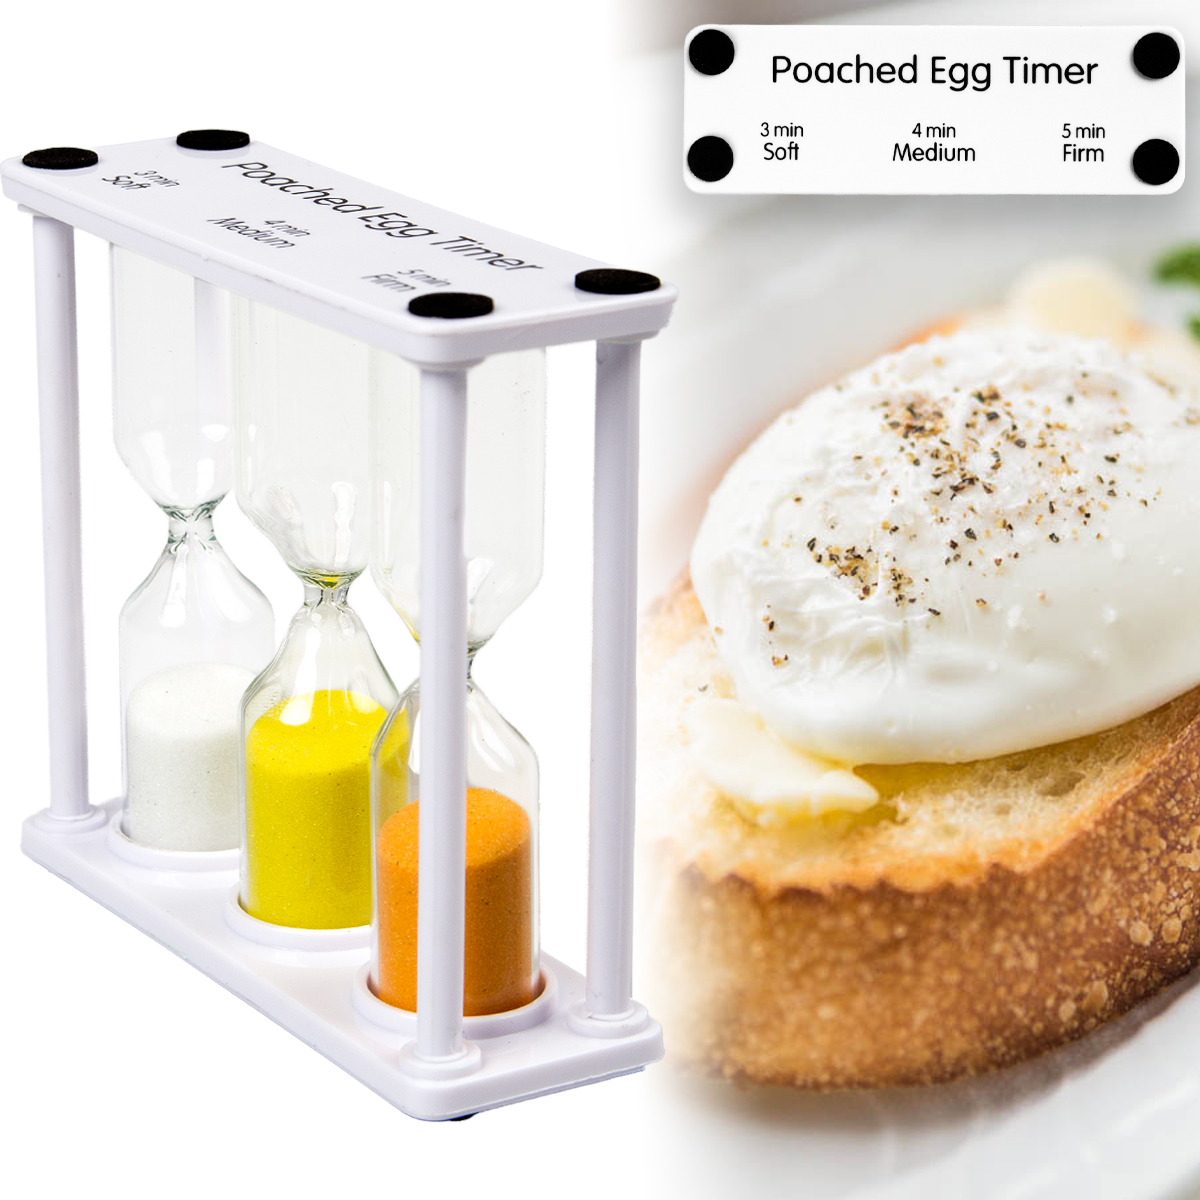 Poached Egg Timer Colorful Sand Hourglass 3, 4, & 5 Minutes Kitchen Cute Novelty Gadget